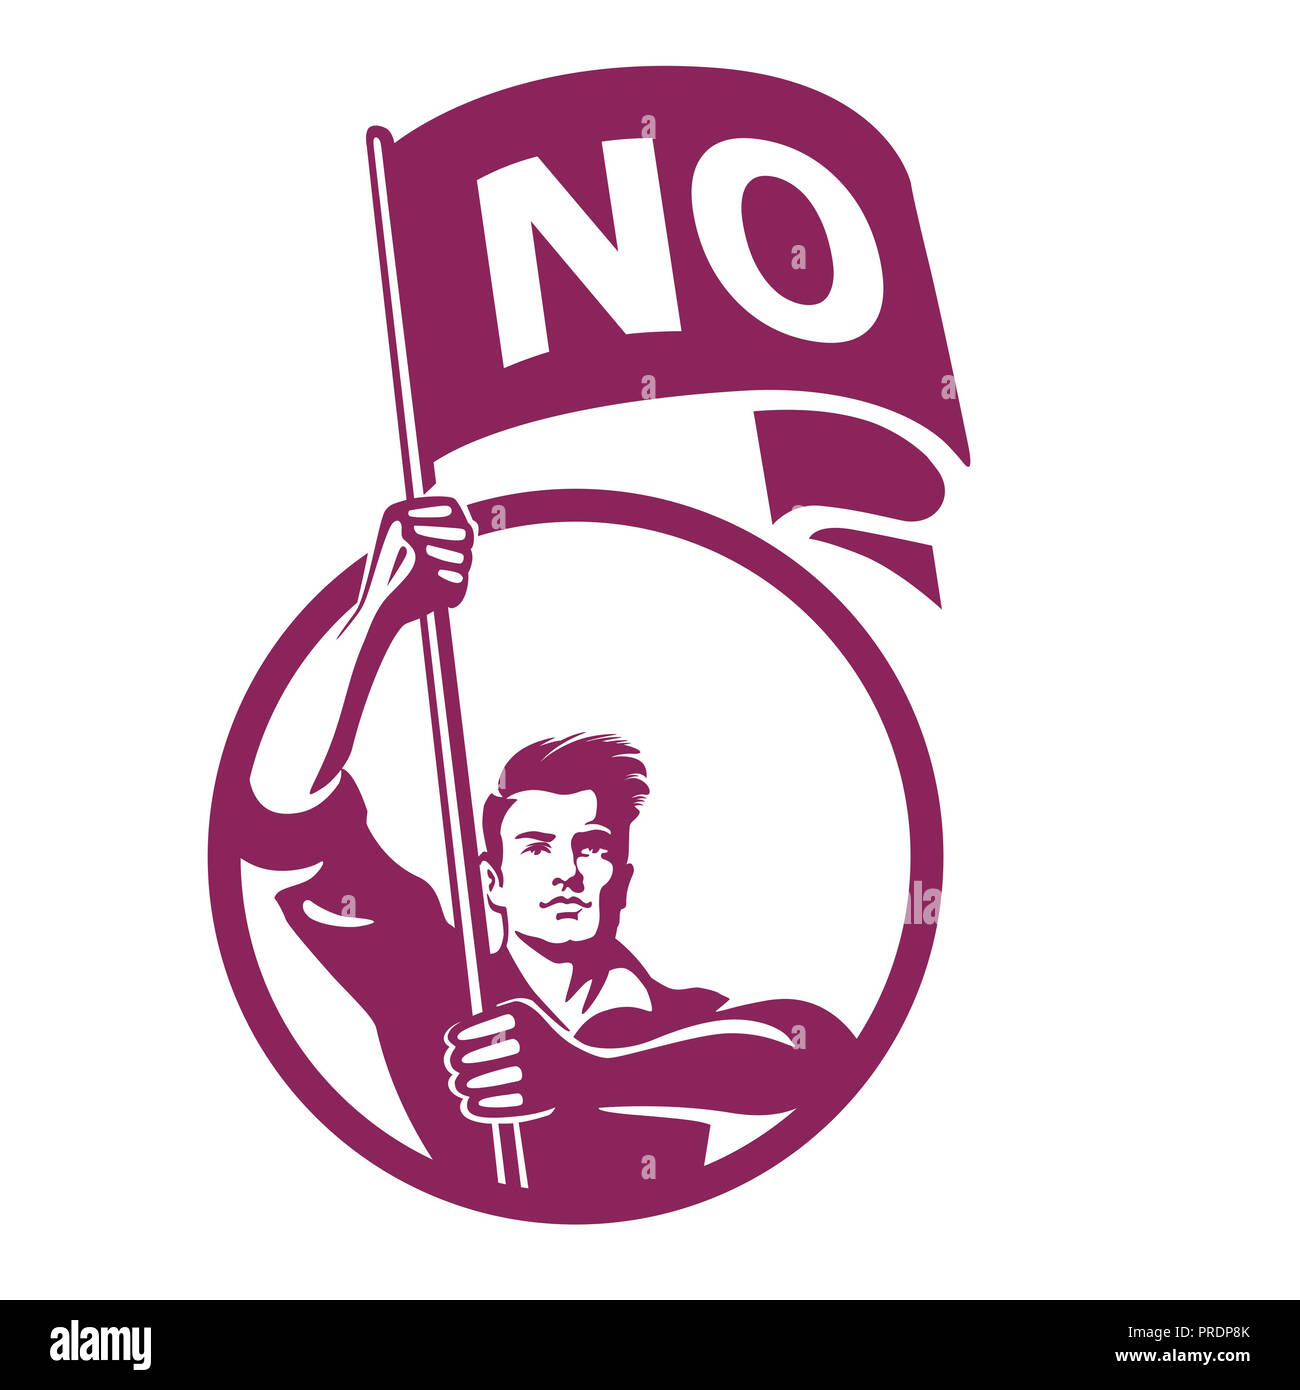 Man holding banner with word No - Stock Image